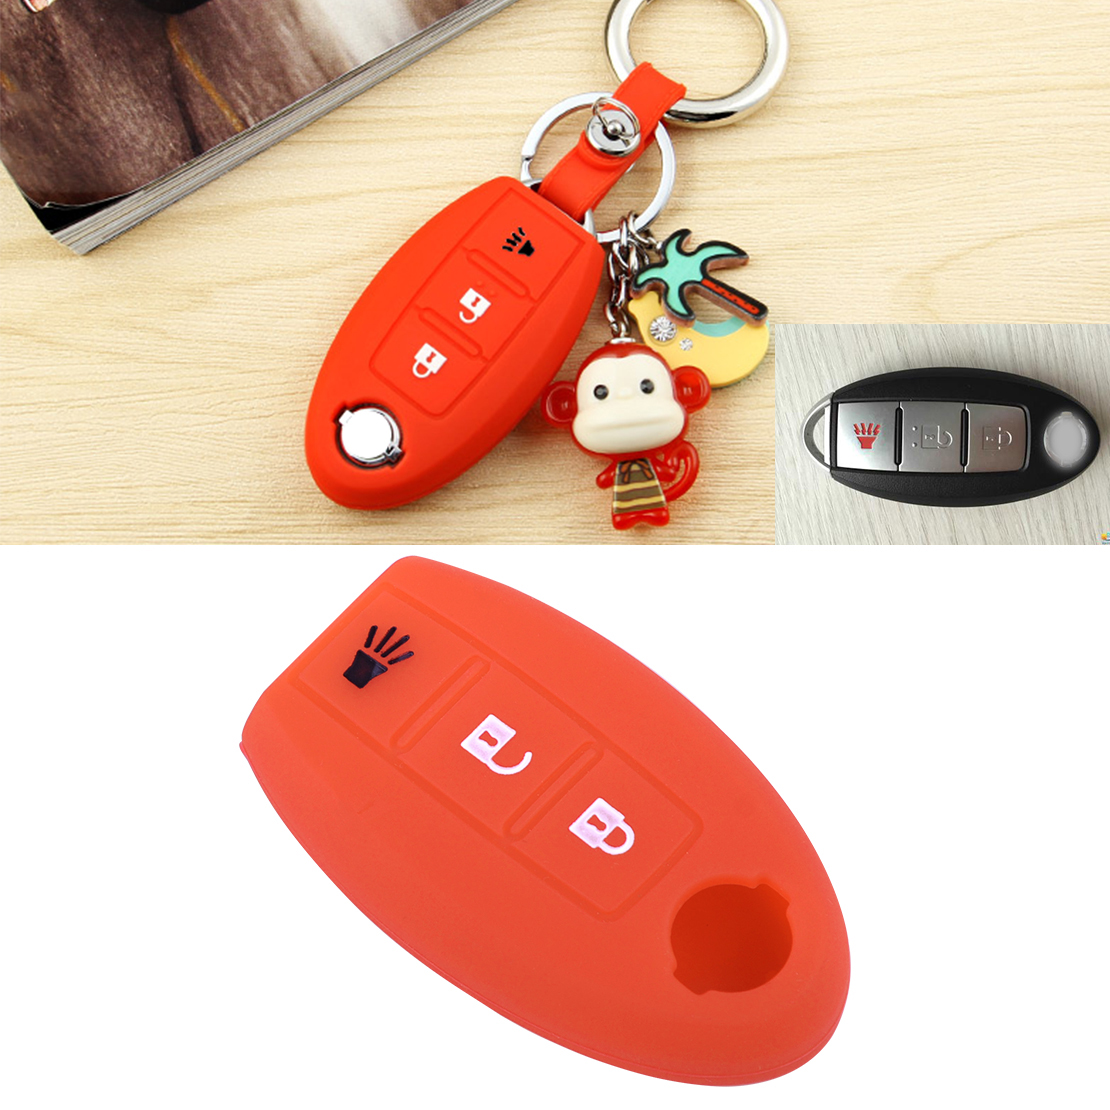 beler 3BTN Remote Key Fob Case Shell Silicone Cover For Nissan Leaf Juke 2011 2012 Murano Rogue Pathfinder 2008 2009 2010 2011